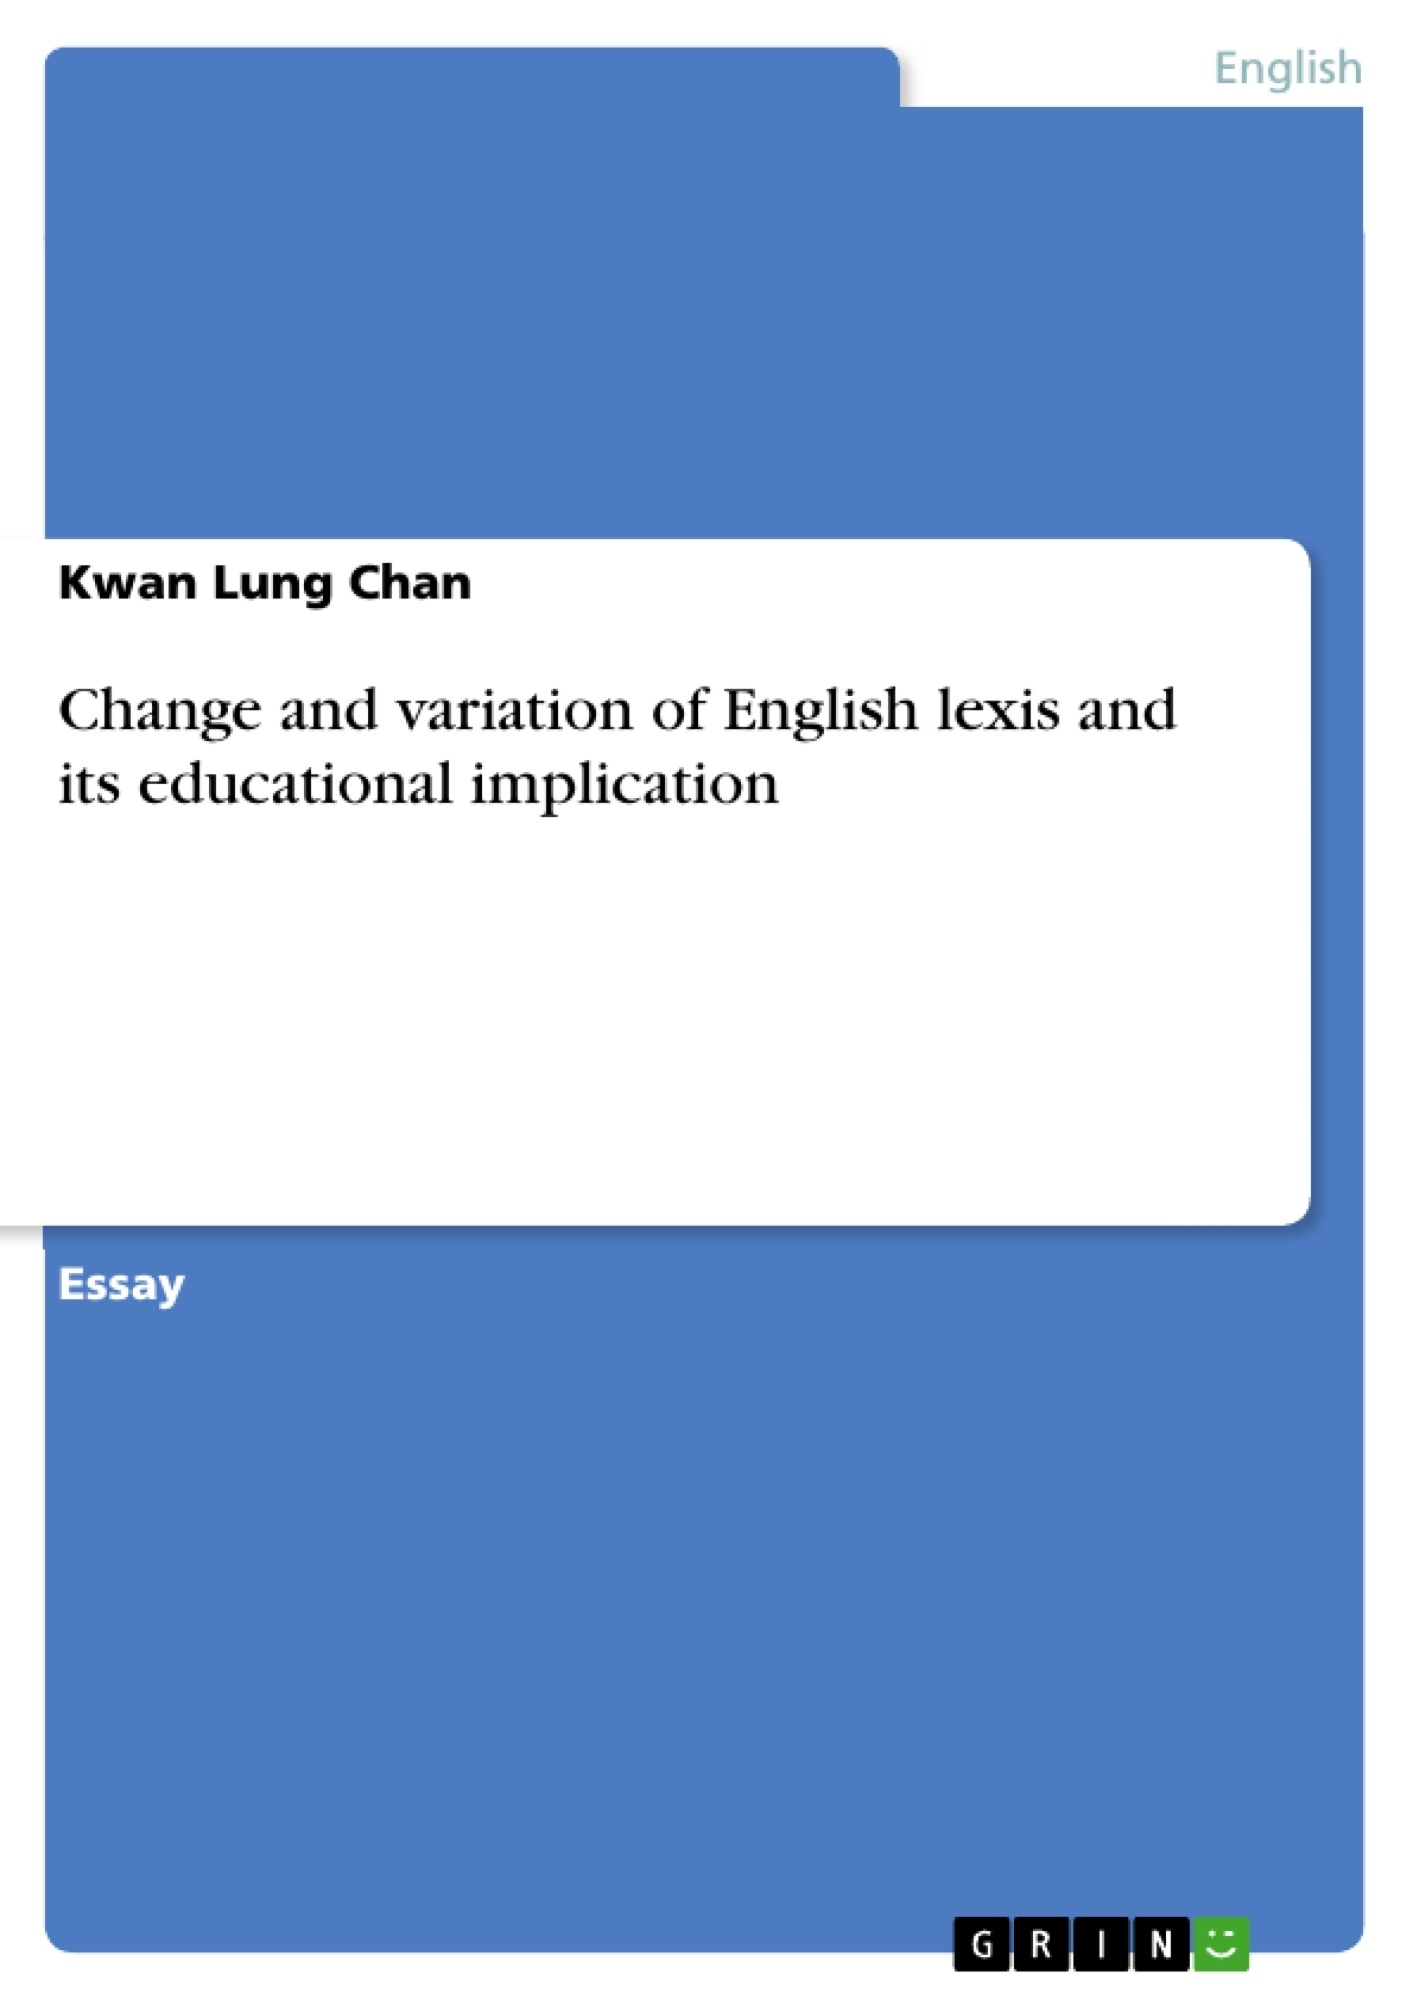 Title: Change and variation of English lexis and its educational implication